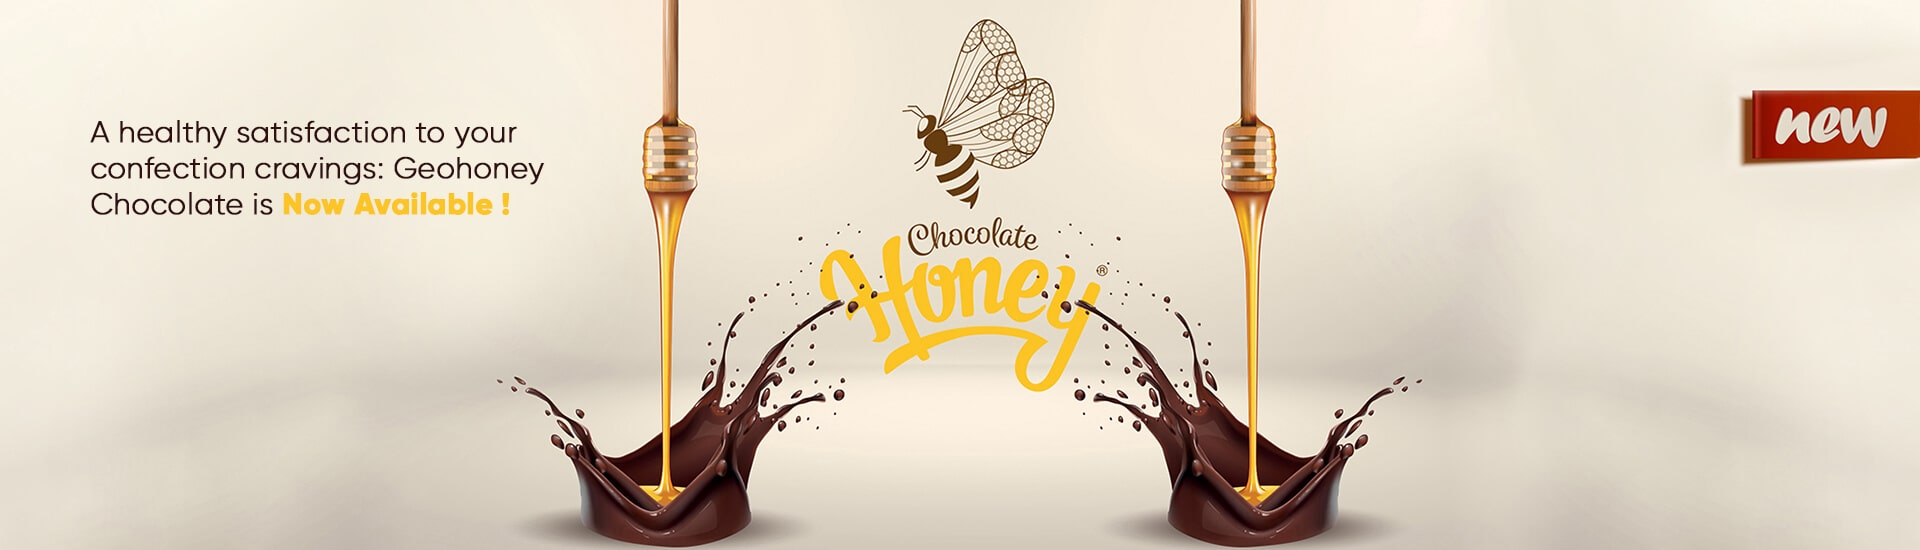 Honey chocolate - Geohoney